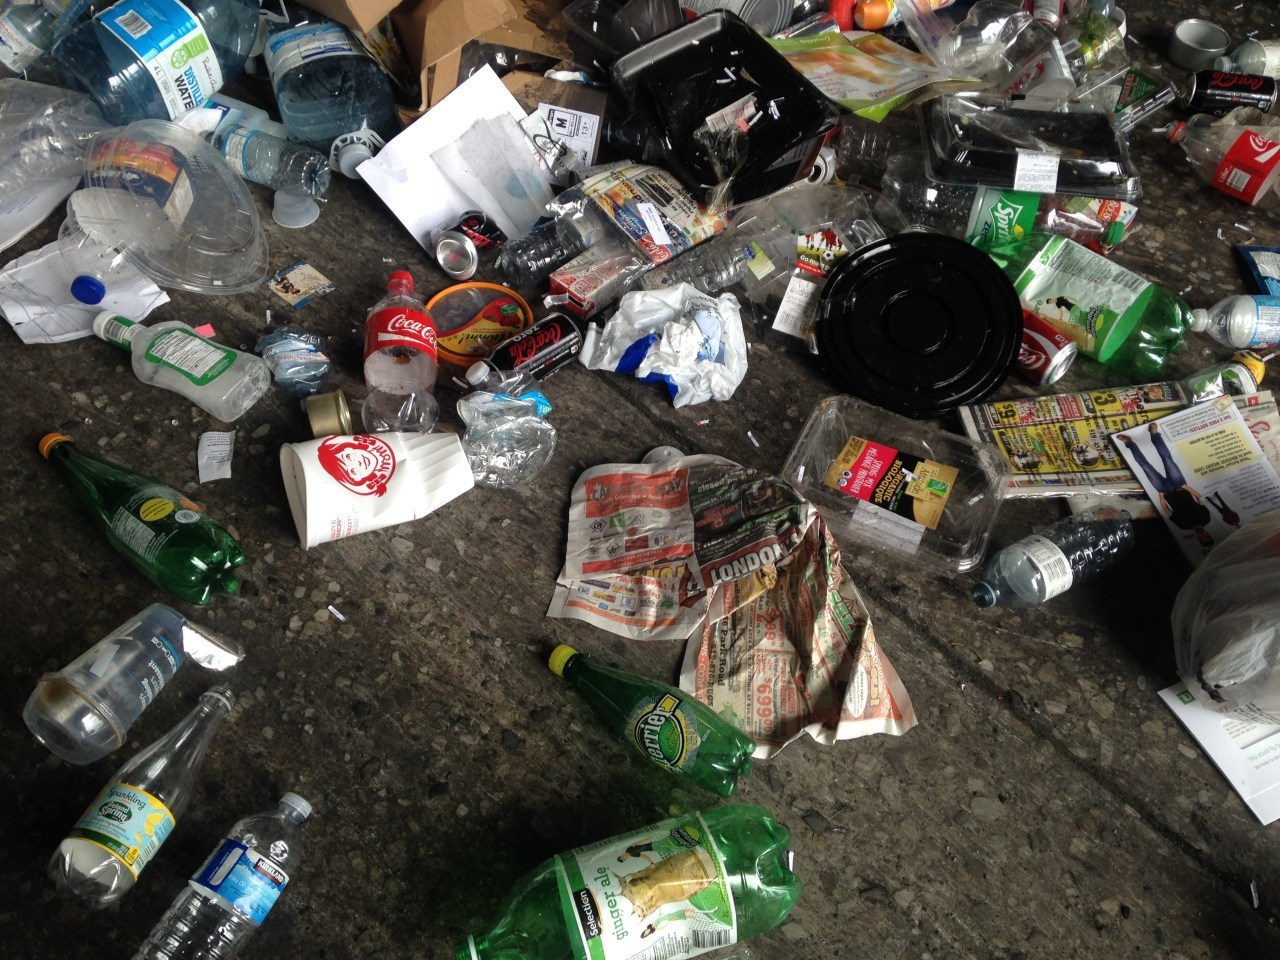 Waste items on the sorting room floor of a waste recovery facility. Photo: Max Liboiron